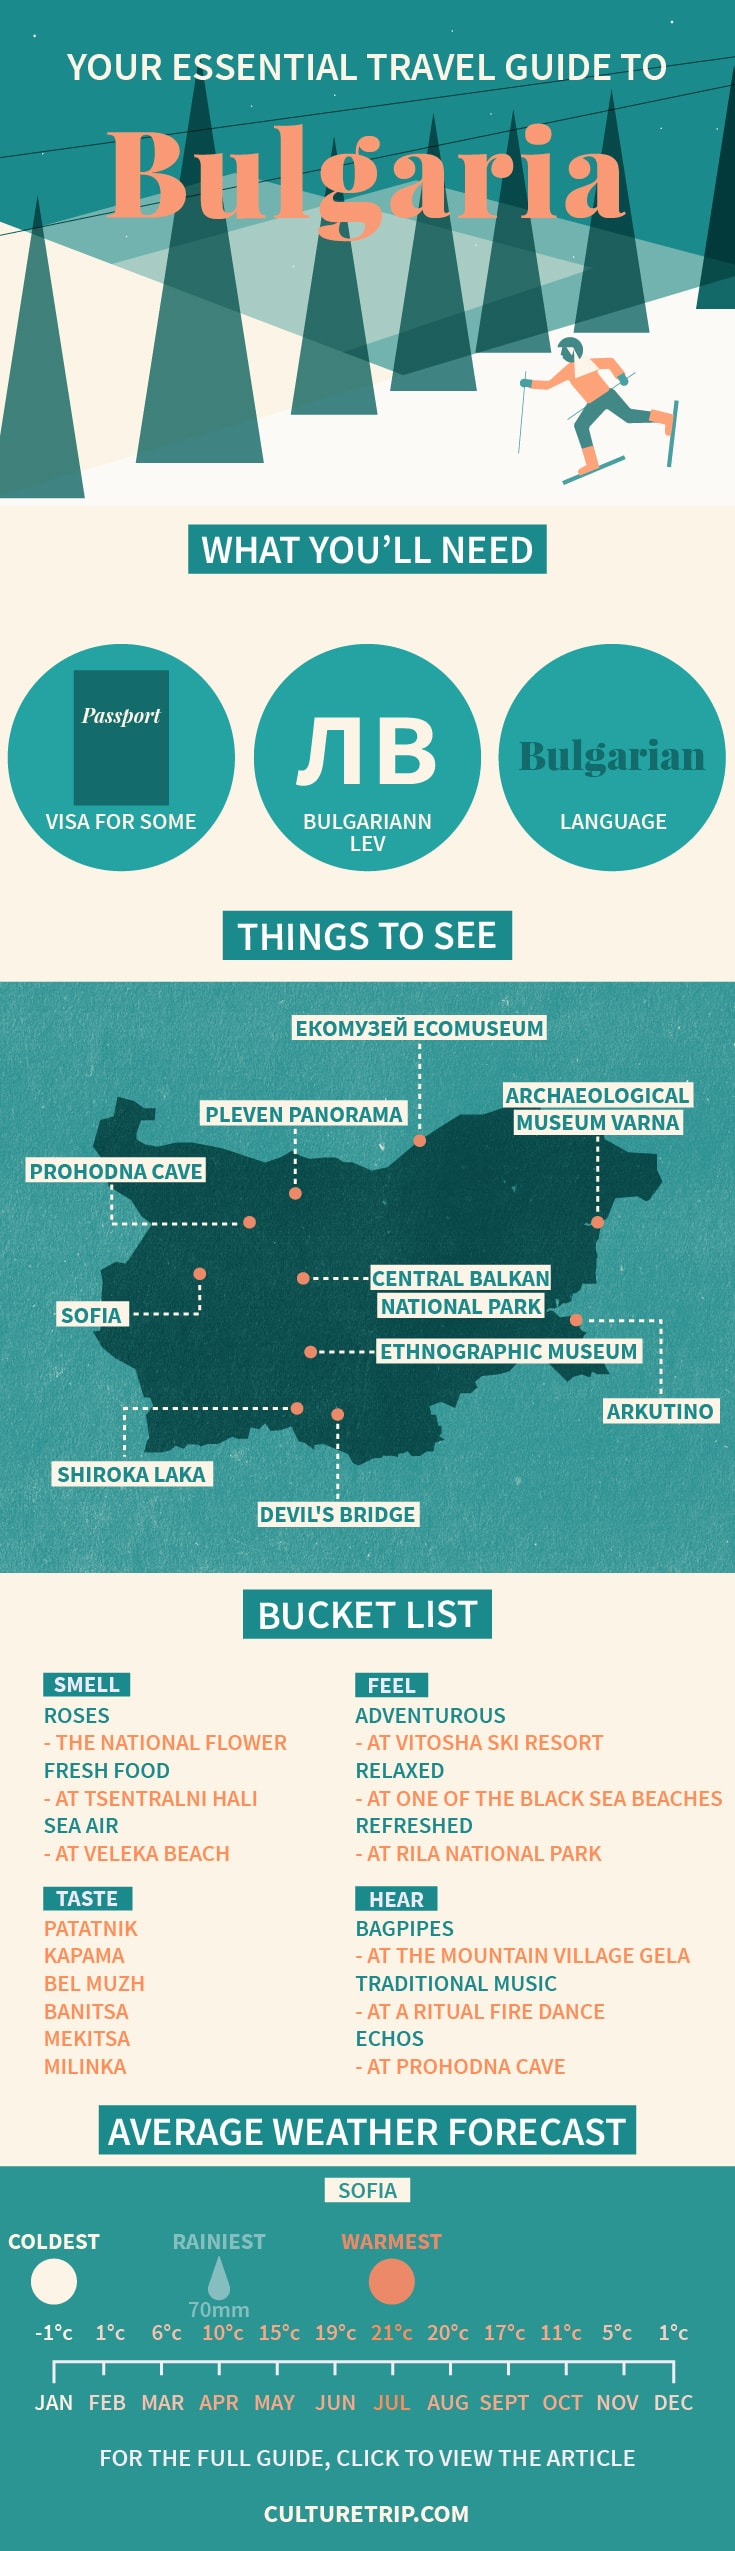 A travel guide for planning your trip to Bulgaria.